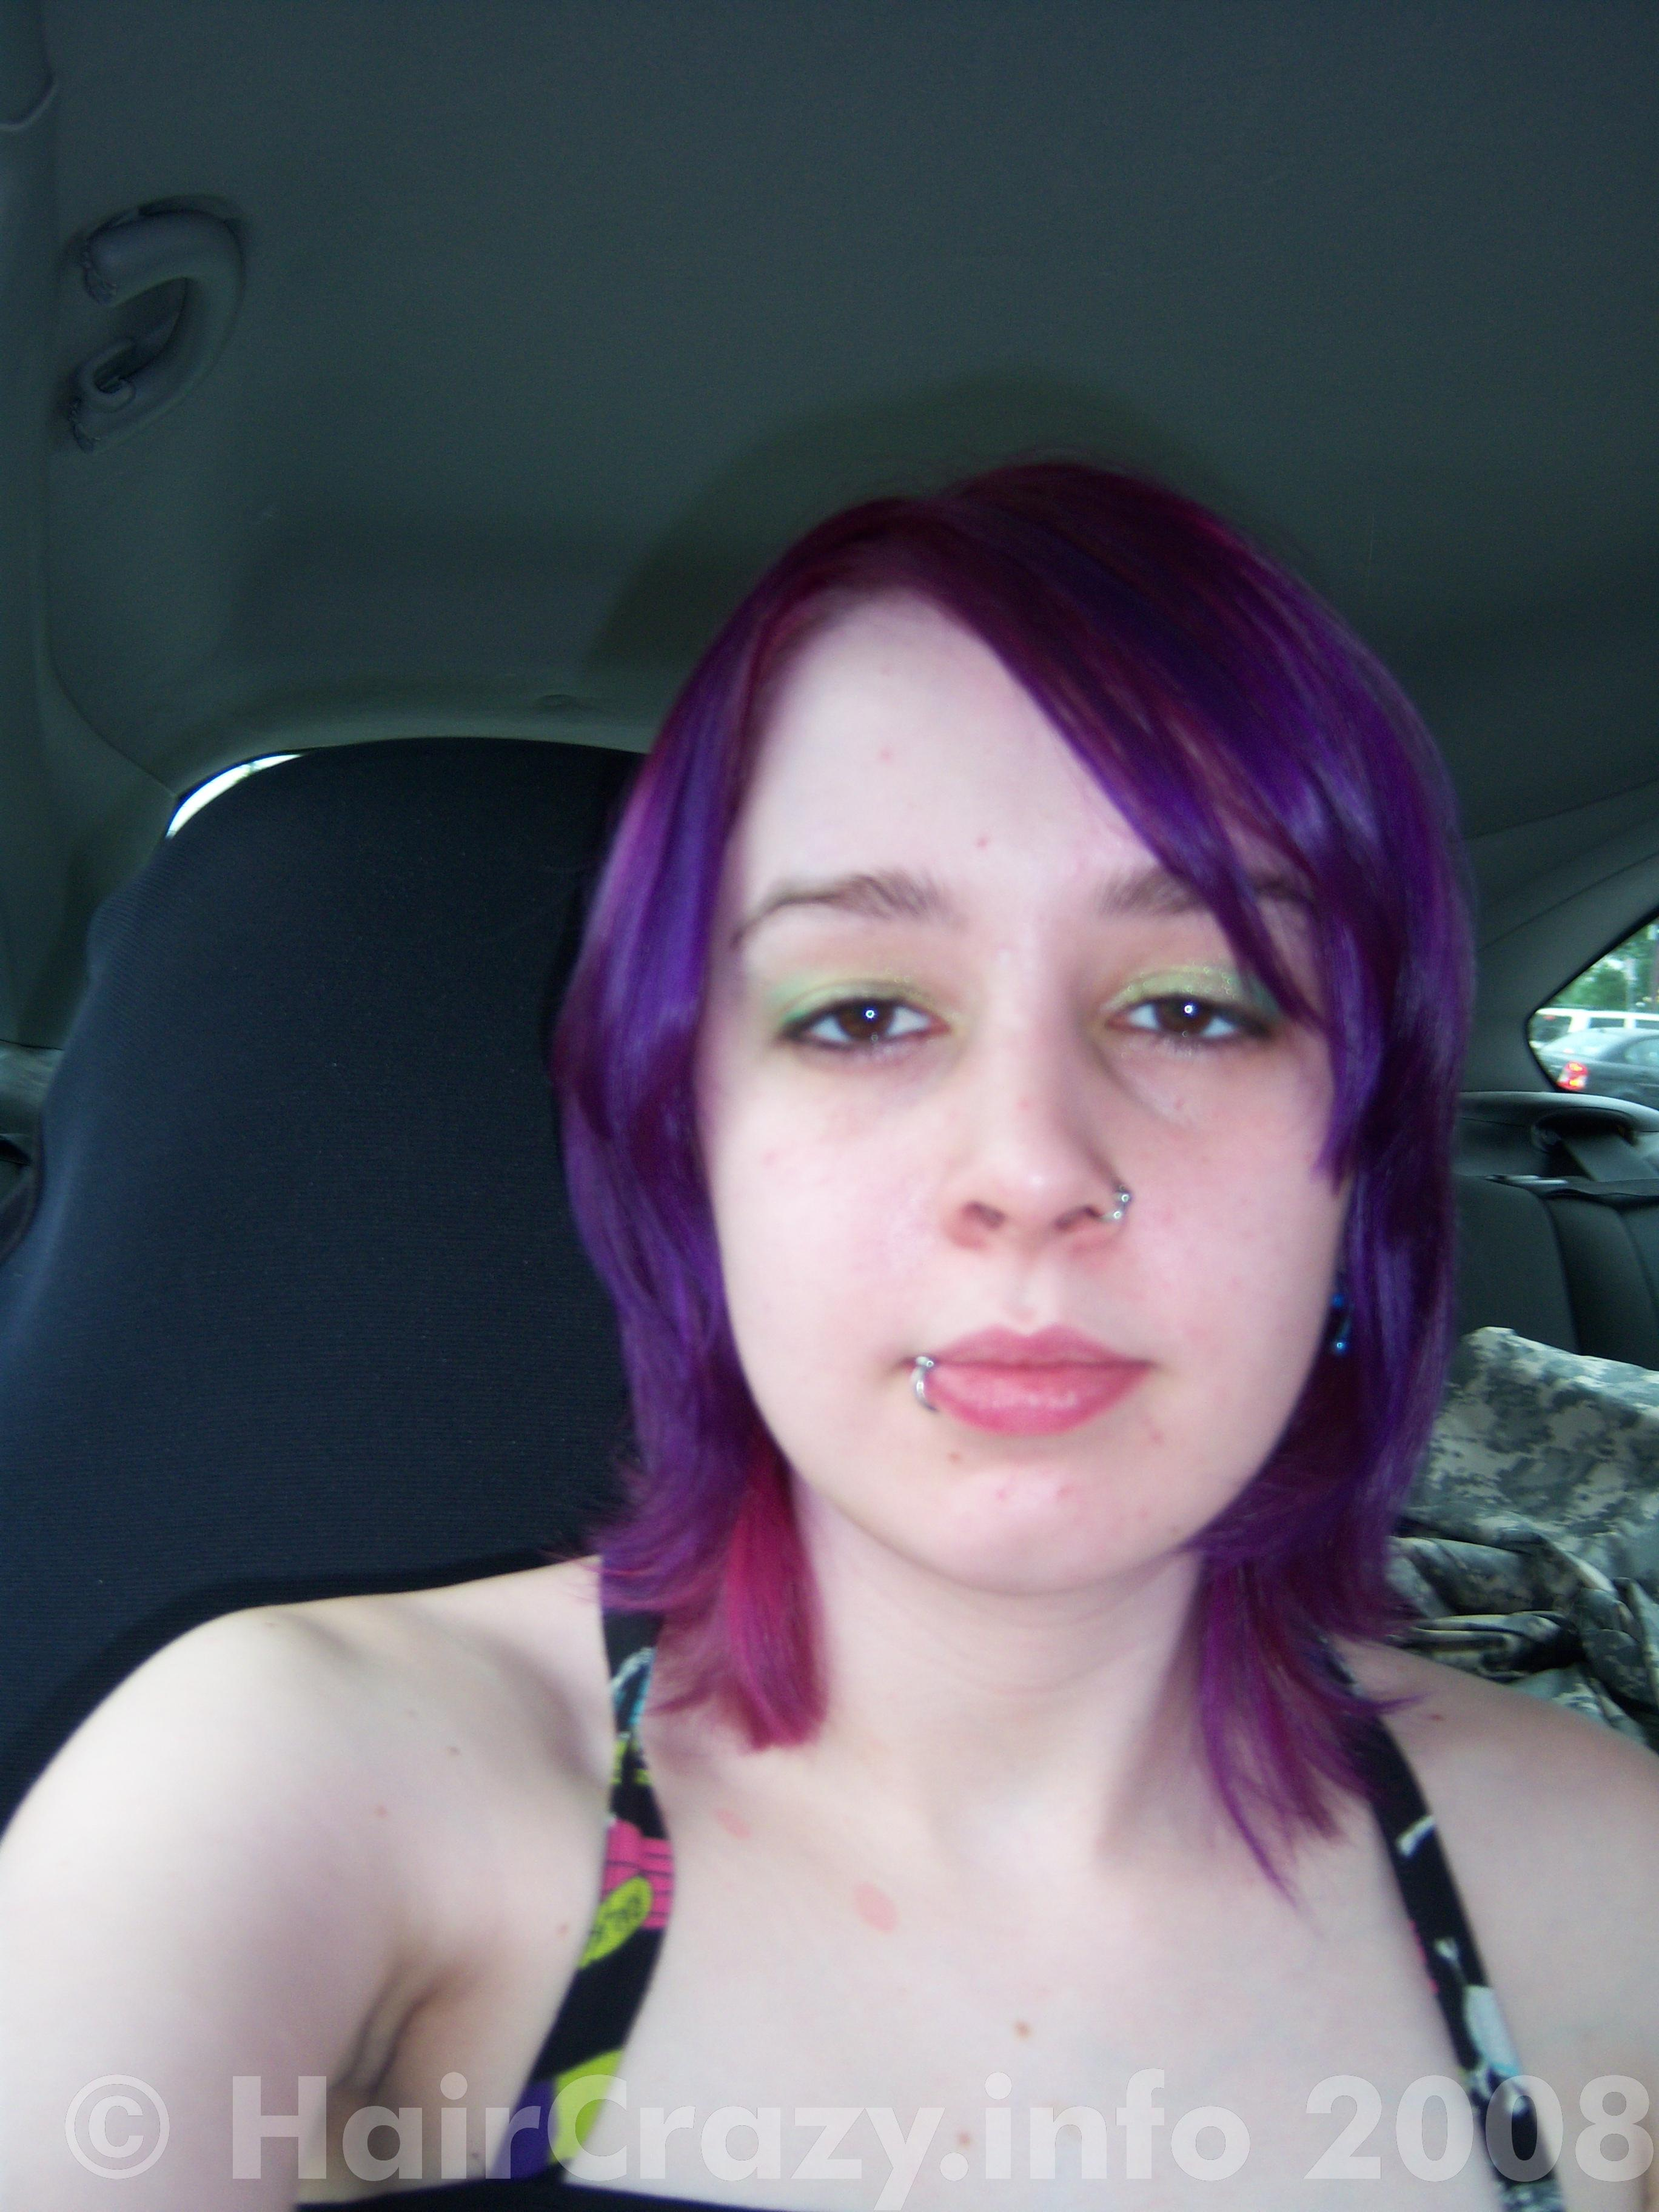 Raw Hair Color In Deep Purple Forums Haircrazy Com